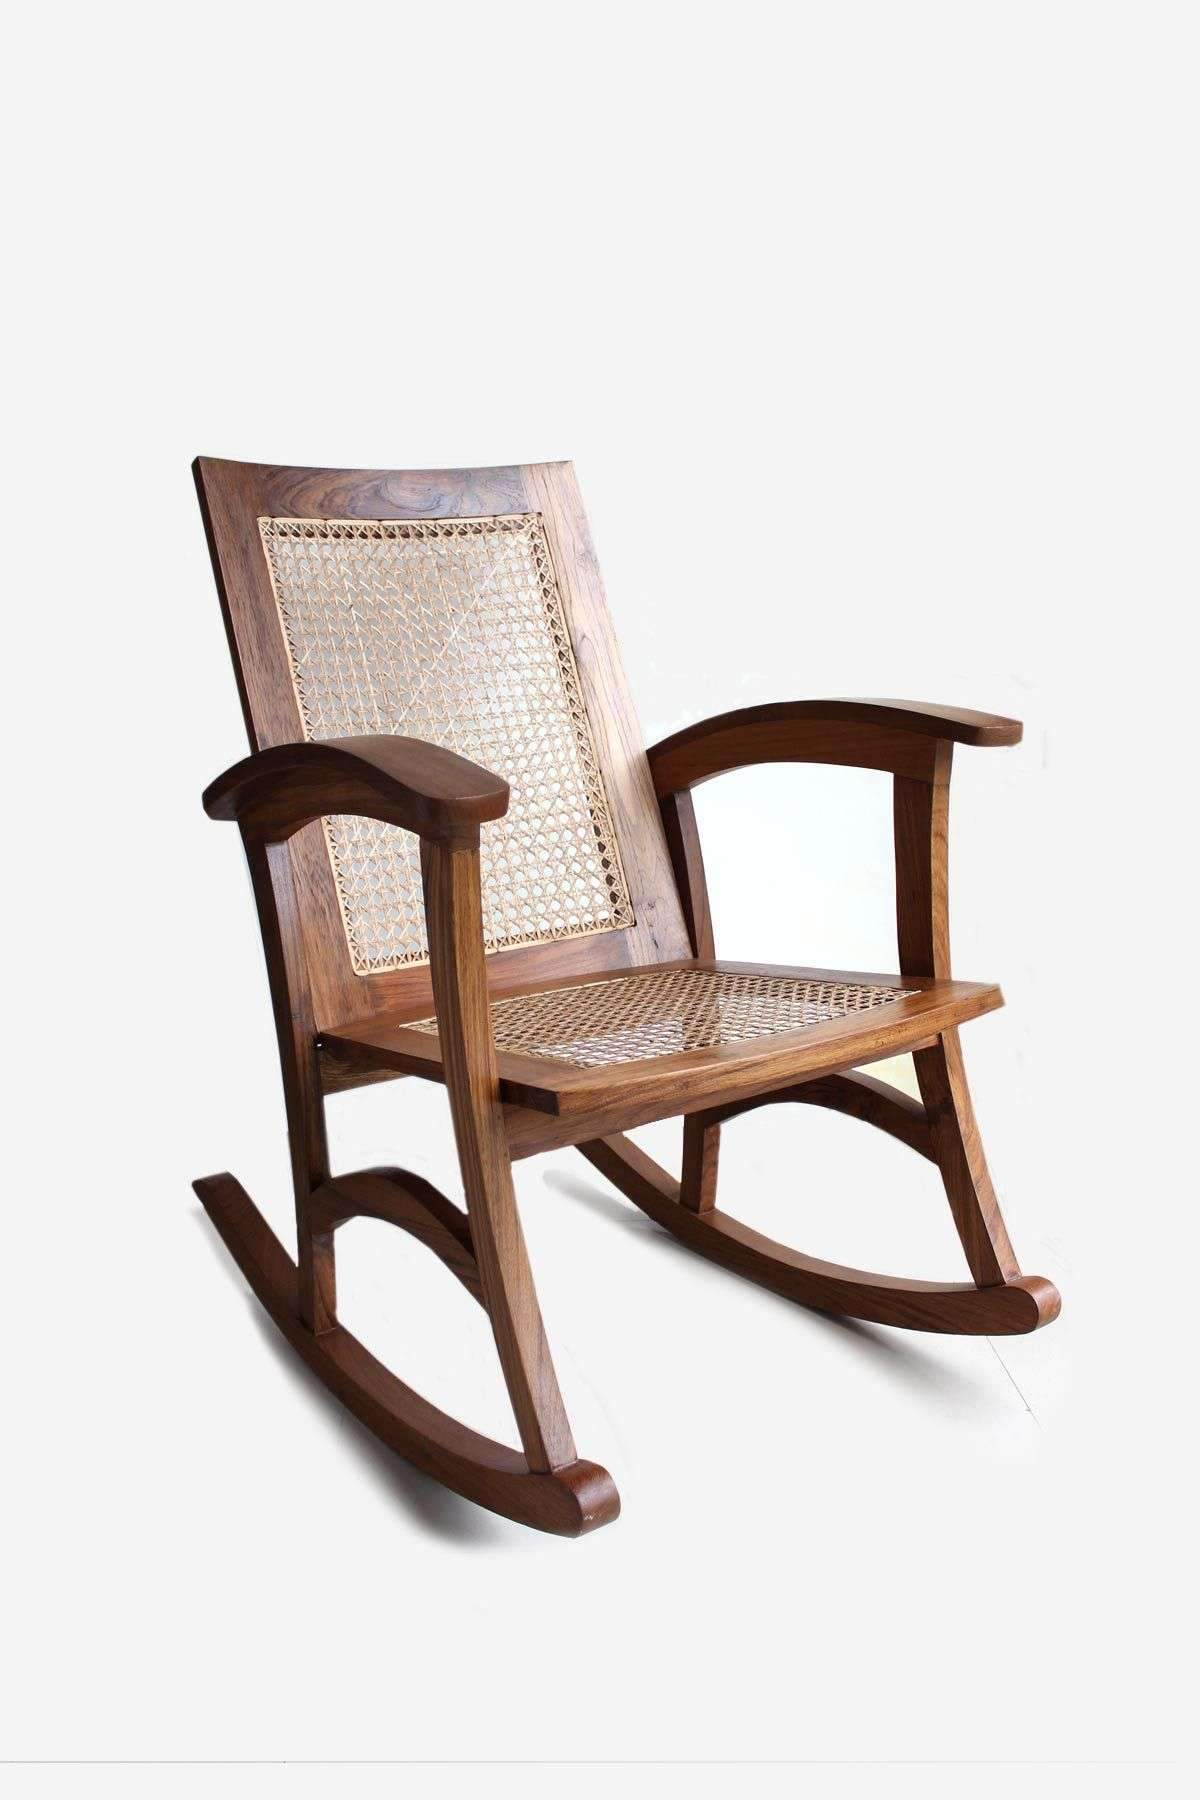 Swell Rocking Chair Freedom Tree Inzonedesignstudio Interior Chair Design Inzonedesignstudiocom